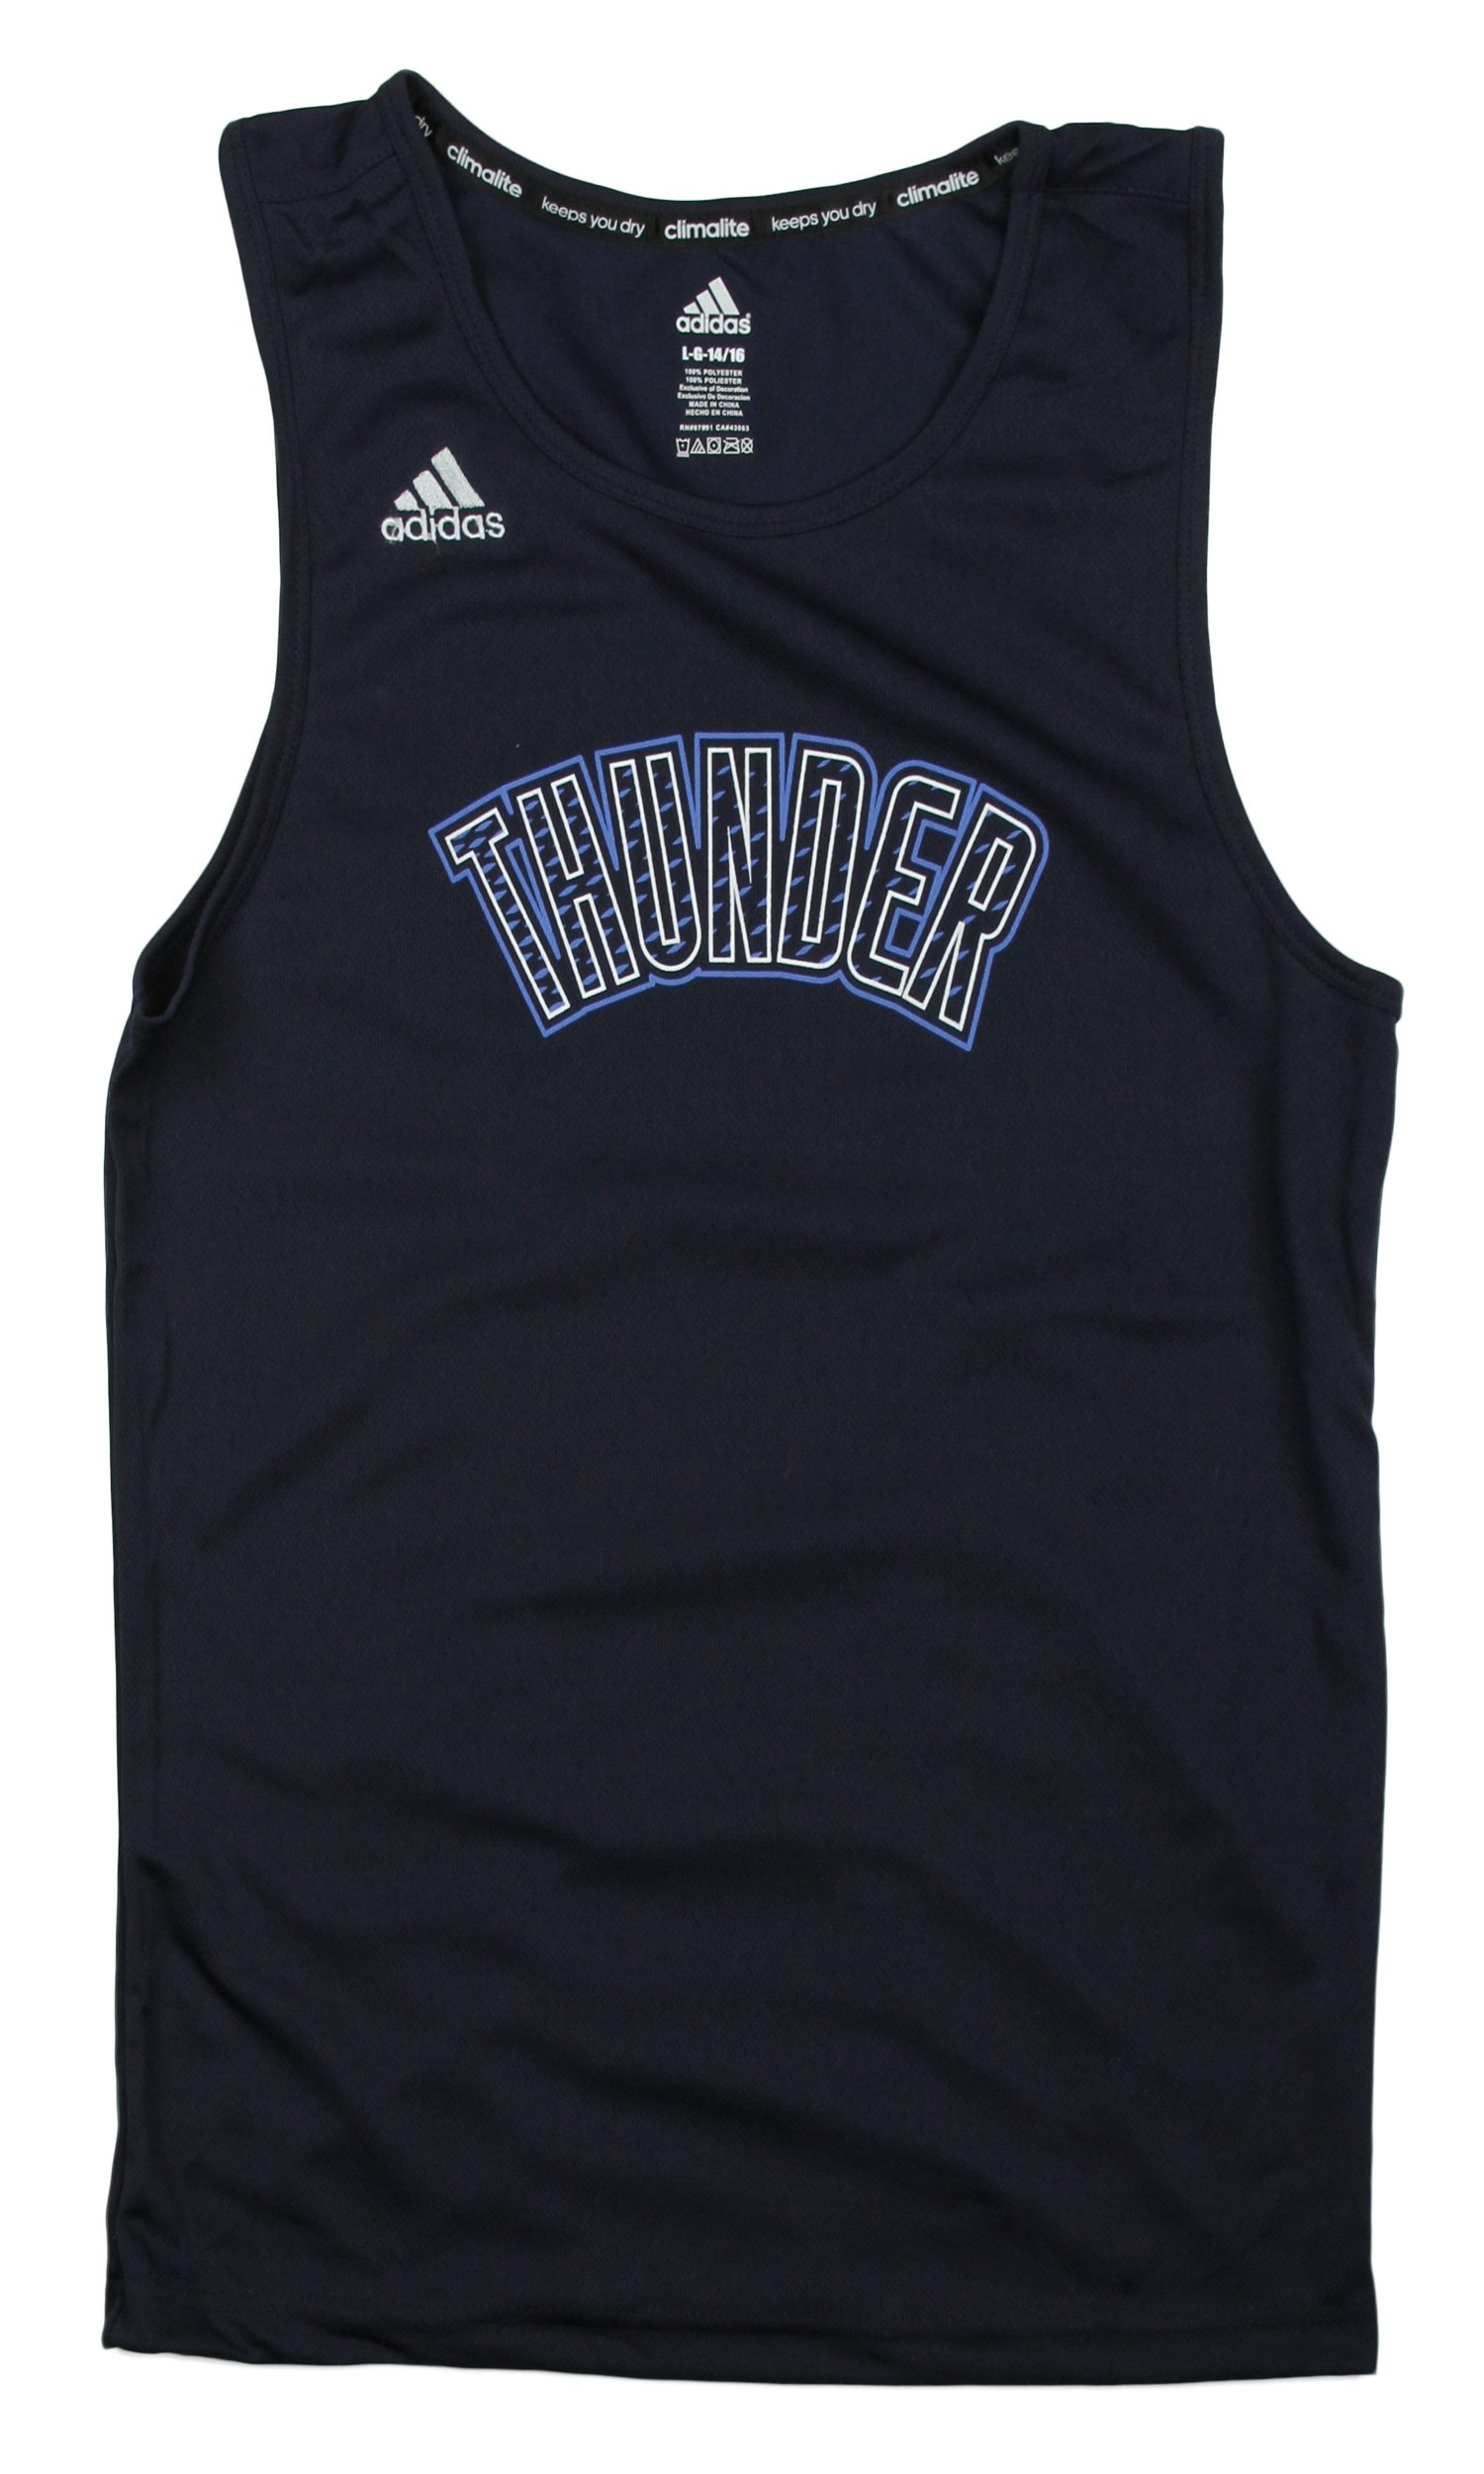 Perfect Youth Sleeveless Shirt City Thunder Nba Adidas Tank Oklahoma CxhrQtBsd